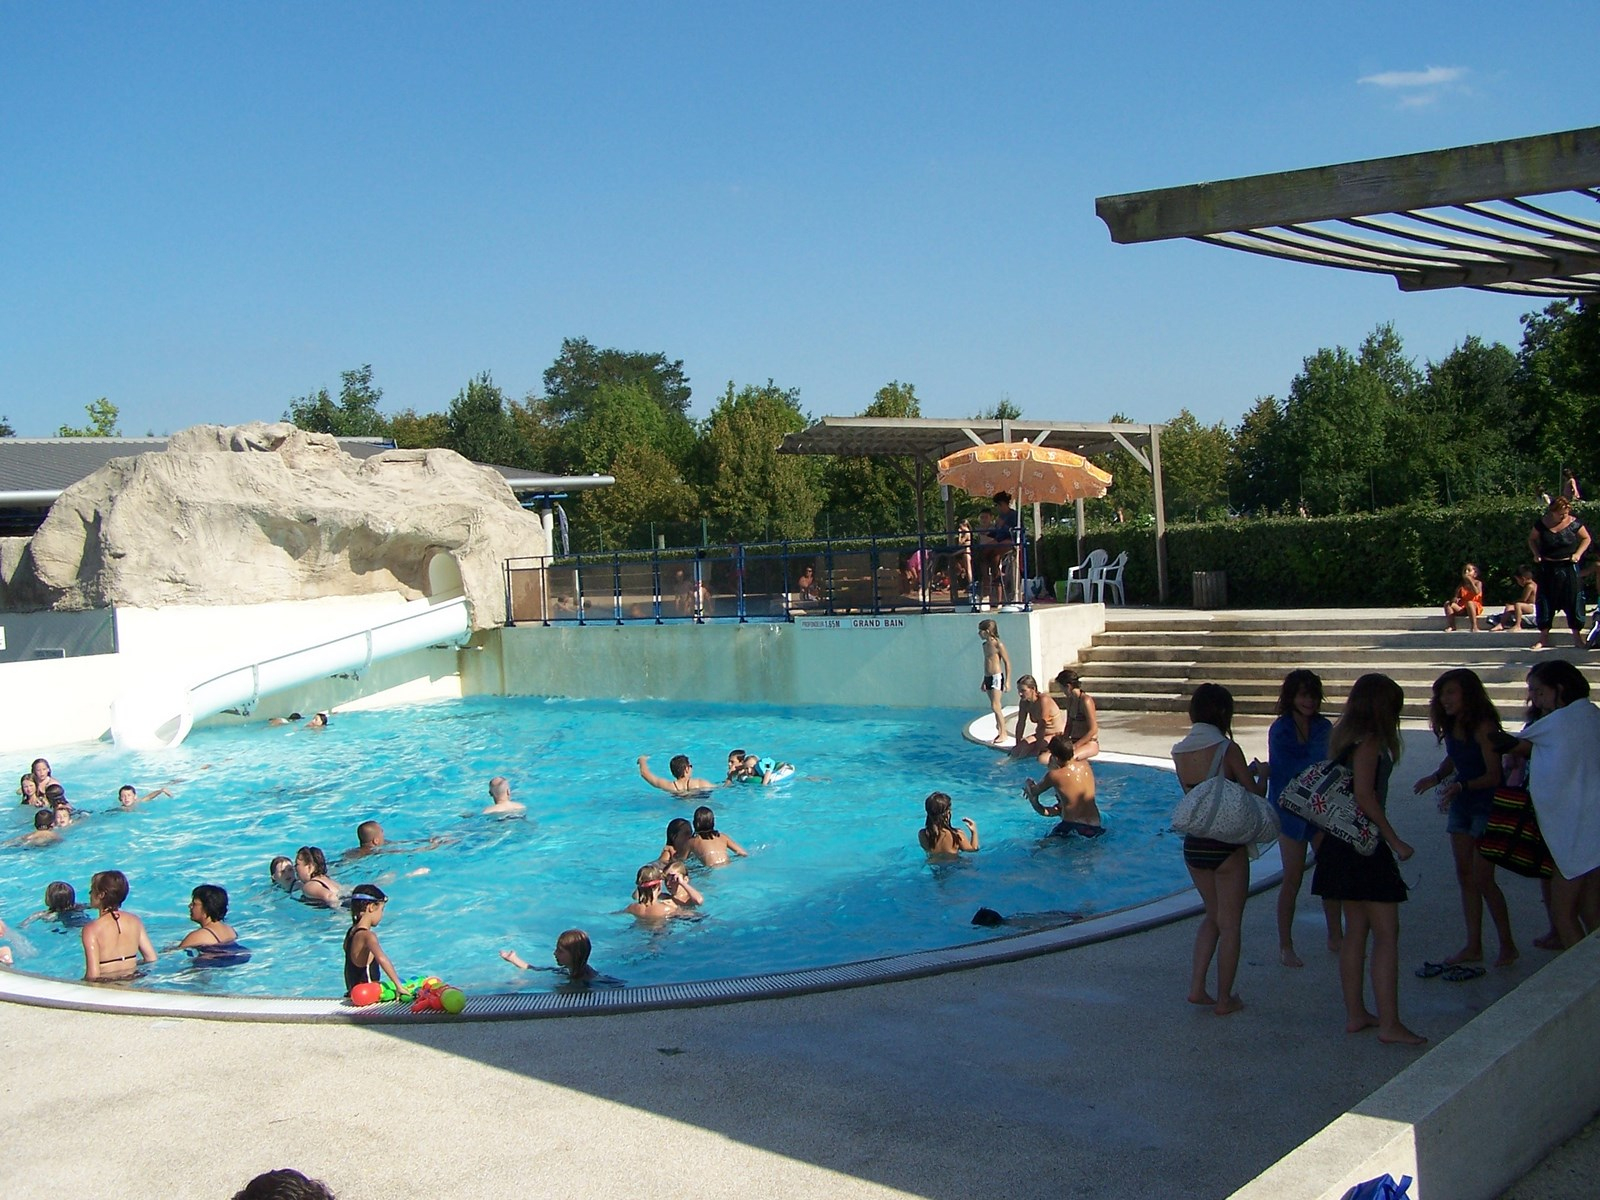 Piscine Ludique Intercommunale serapportantà Horaire Piscine Bressuire